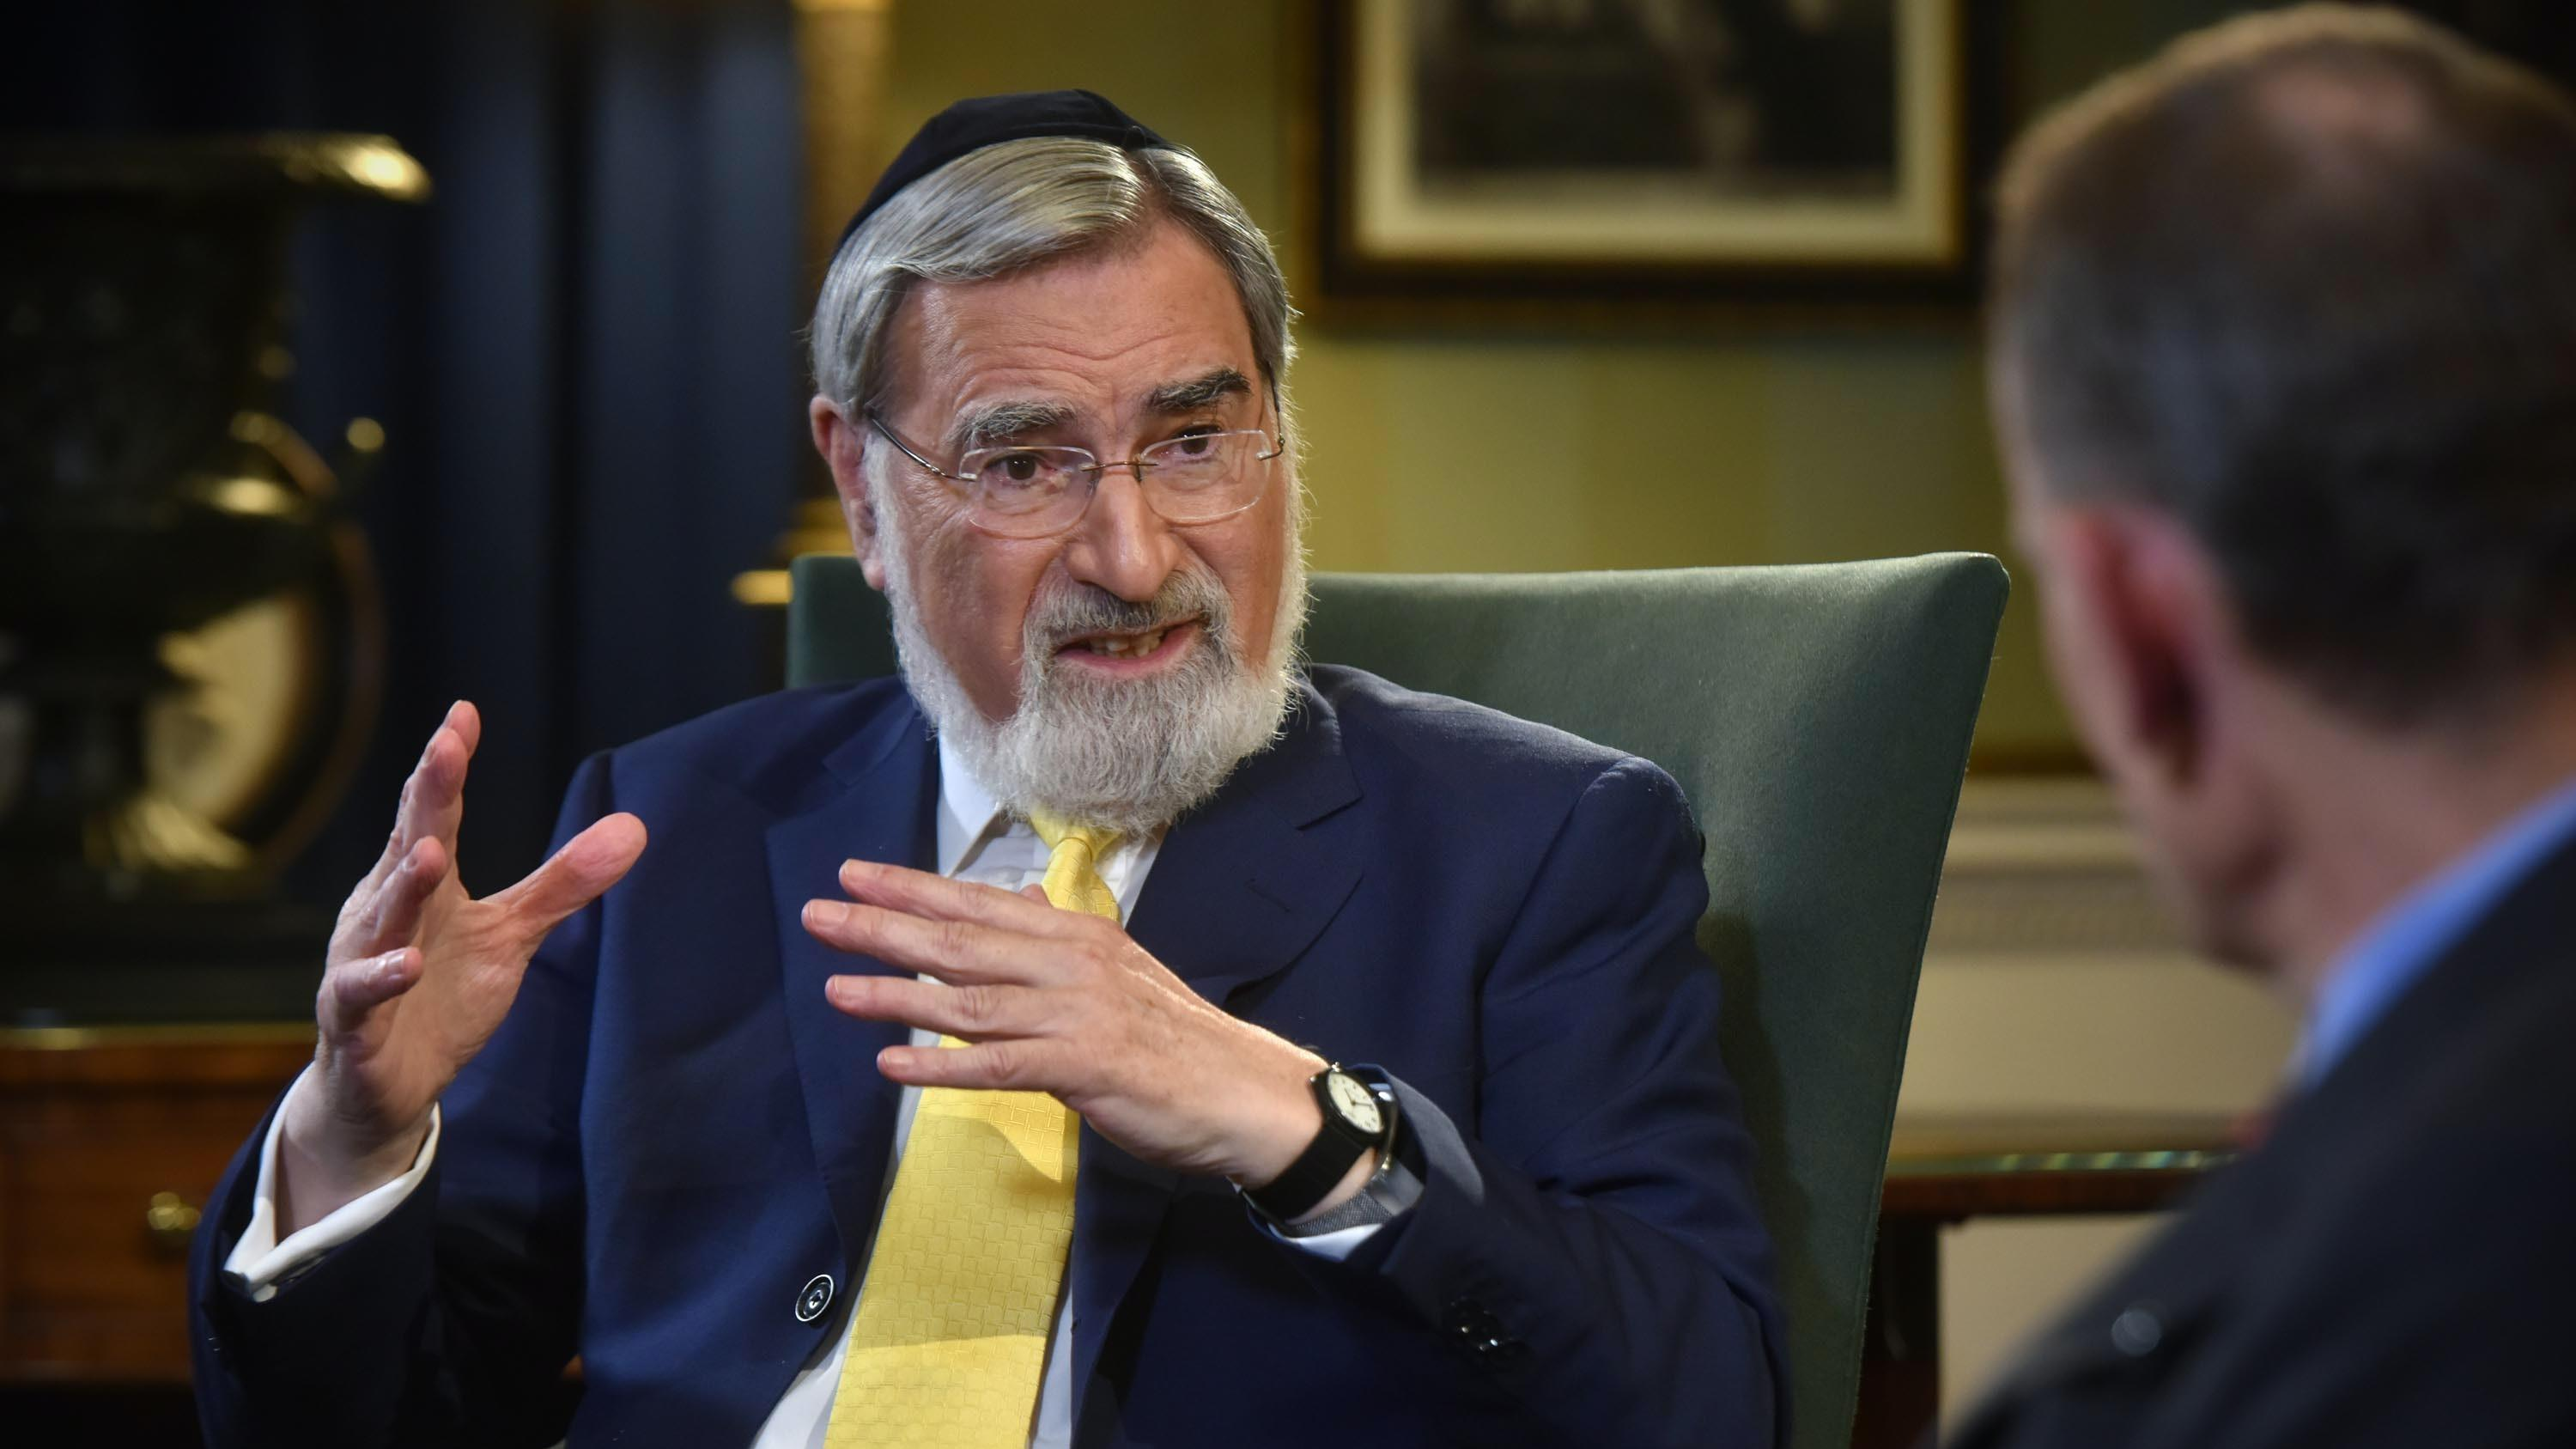 Former chief rabbi Lord Sacks dies